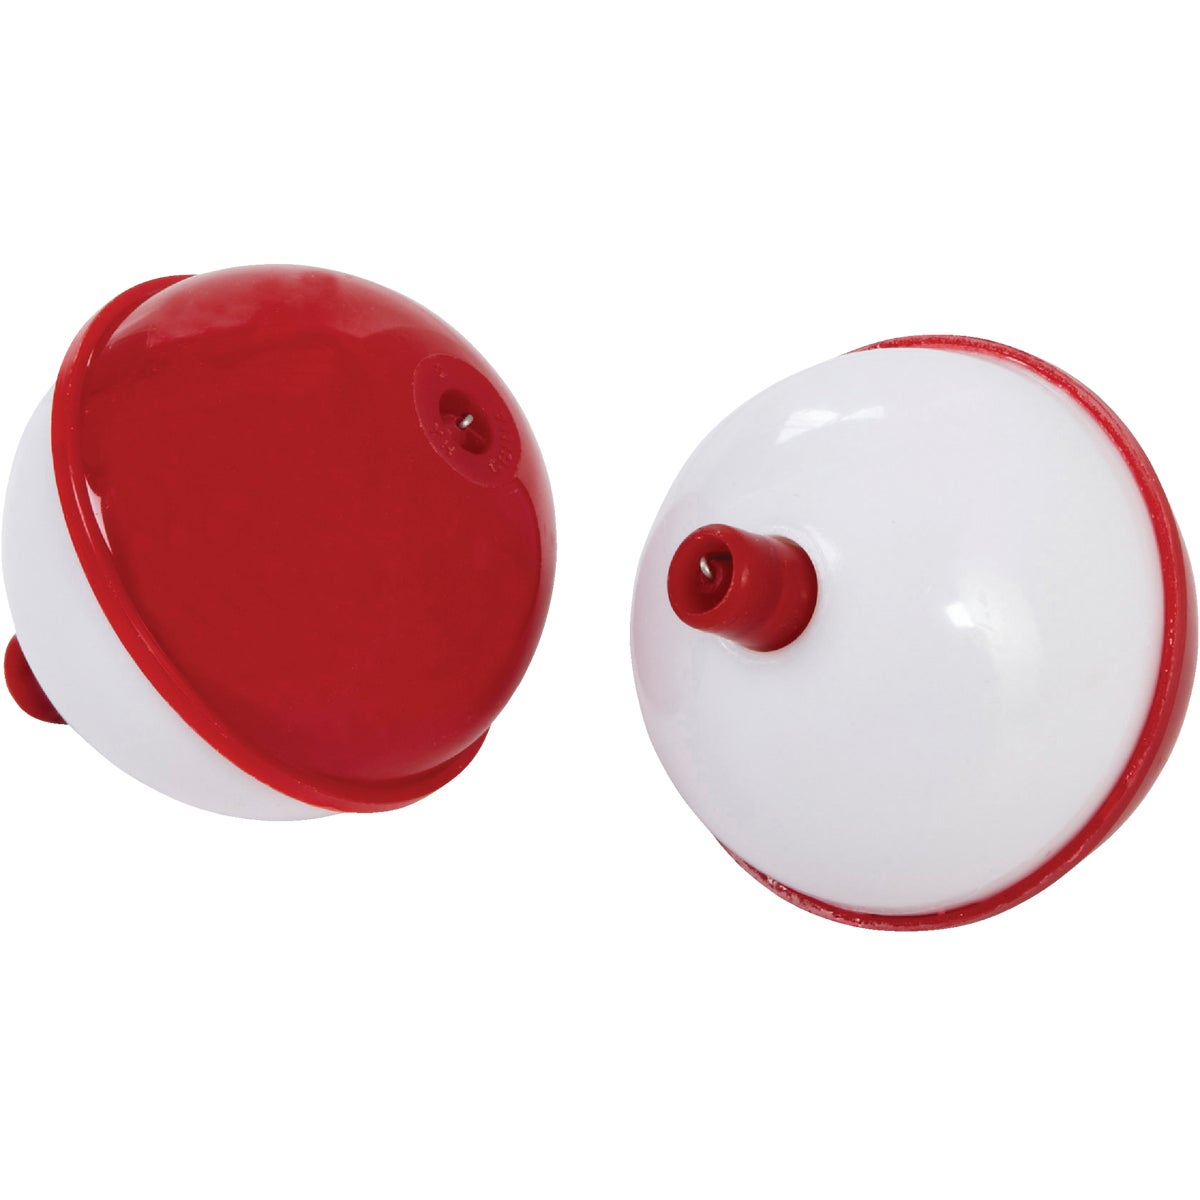 "2""PUSH BUTTON FLOATS - F12 by South Bend Sptg Good"